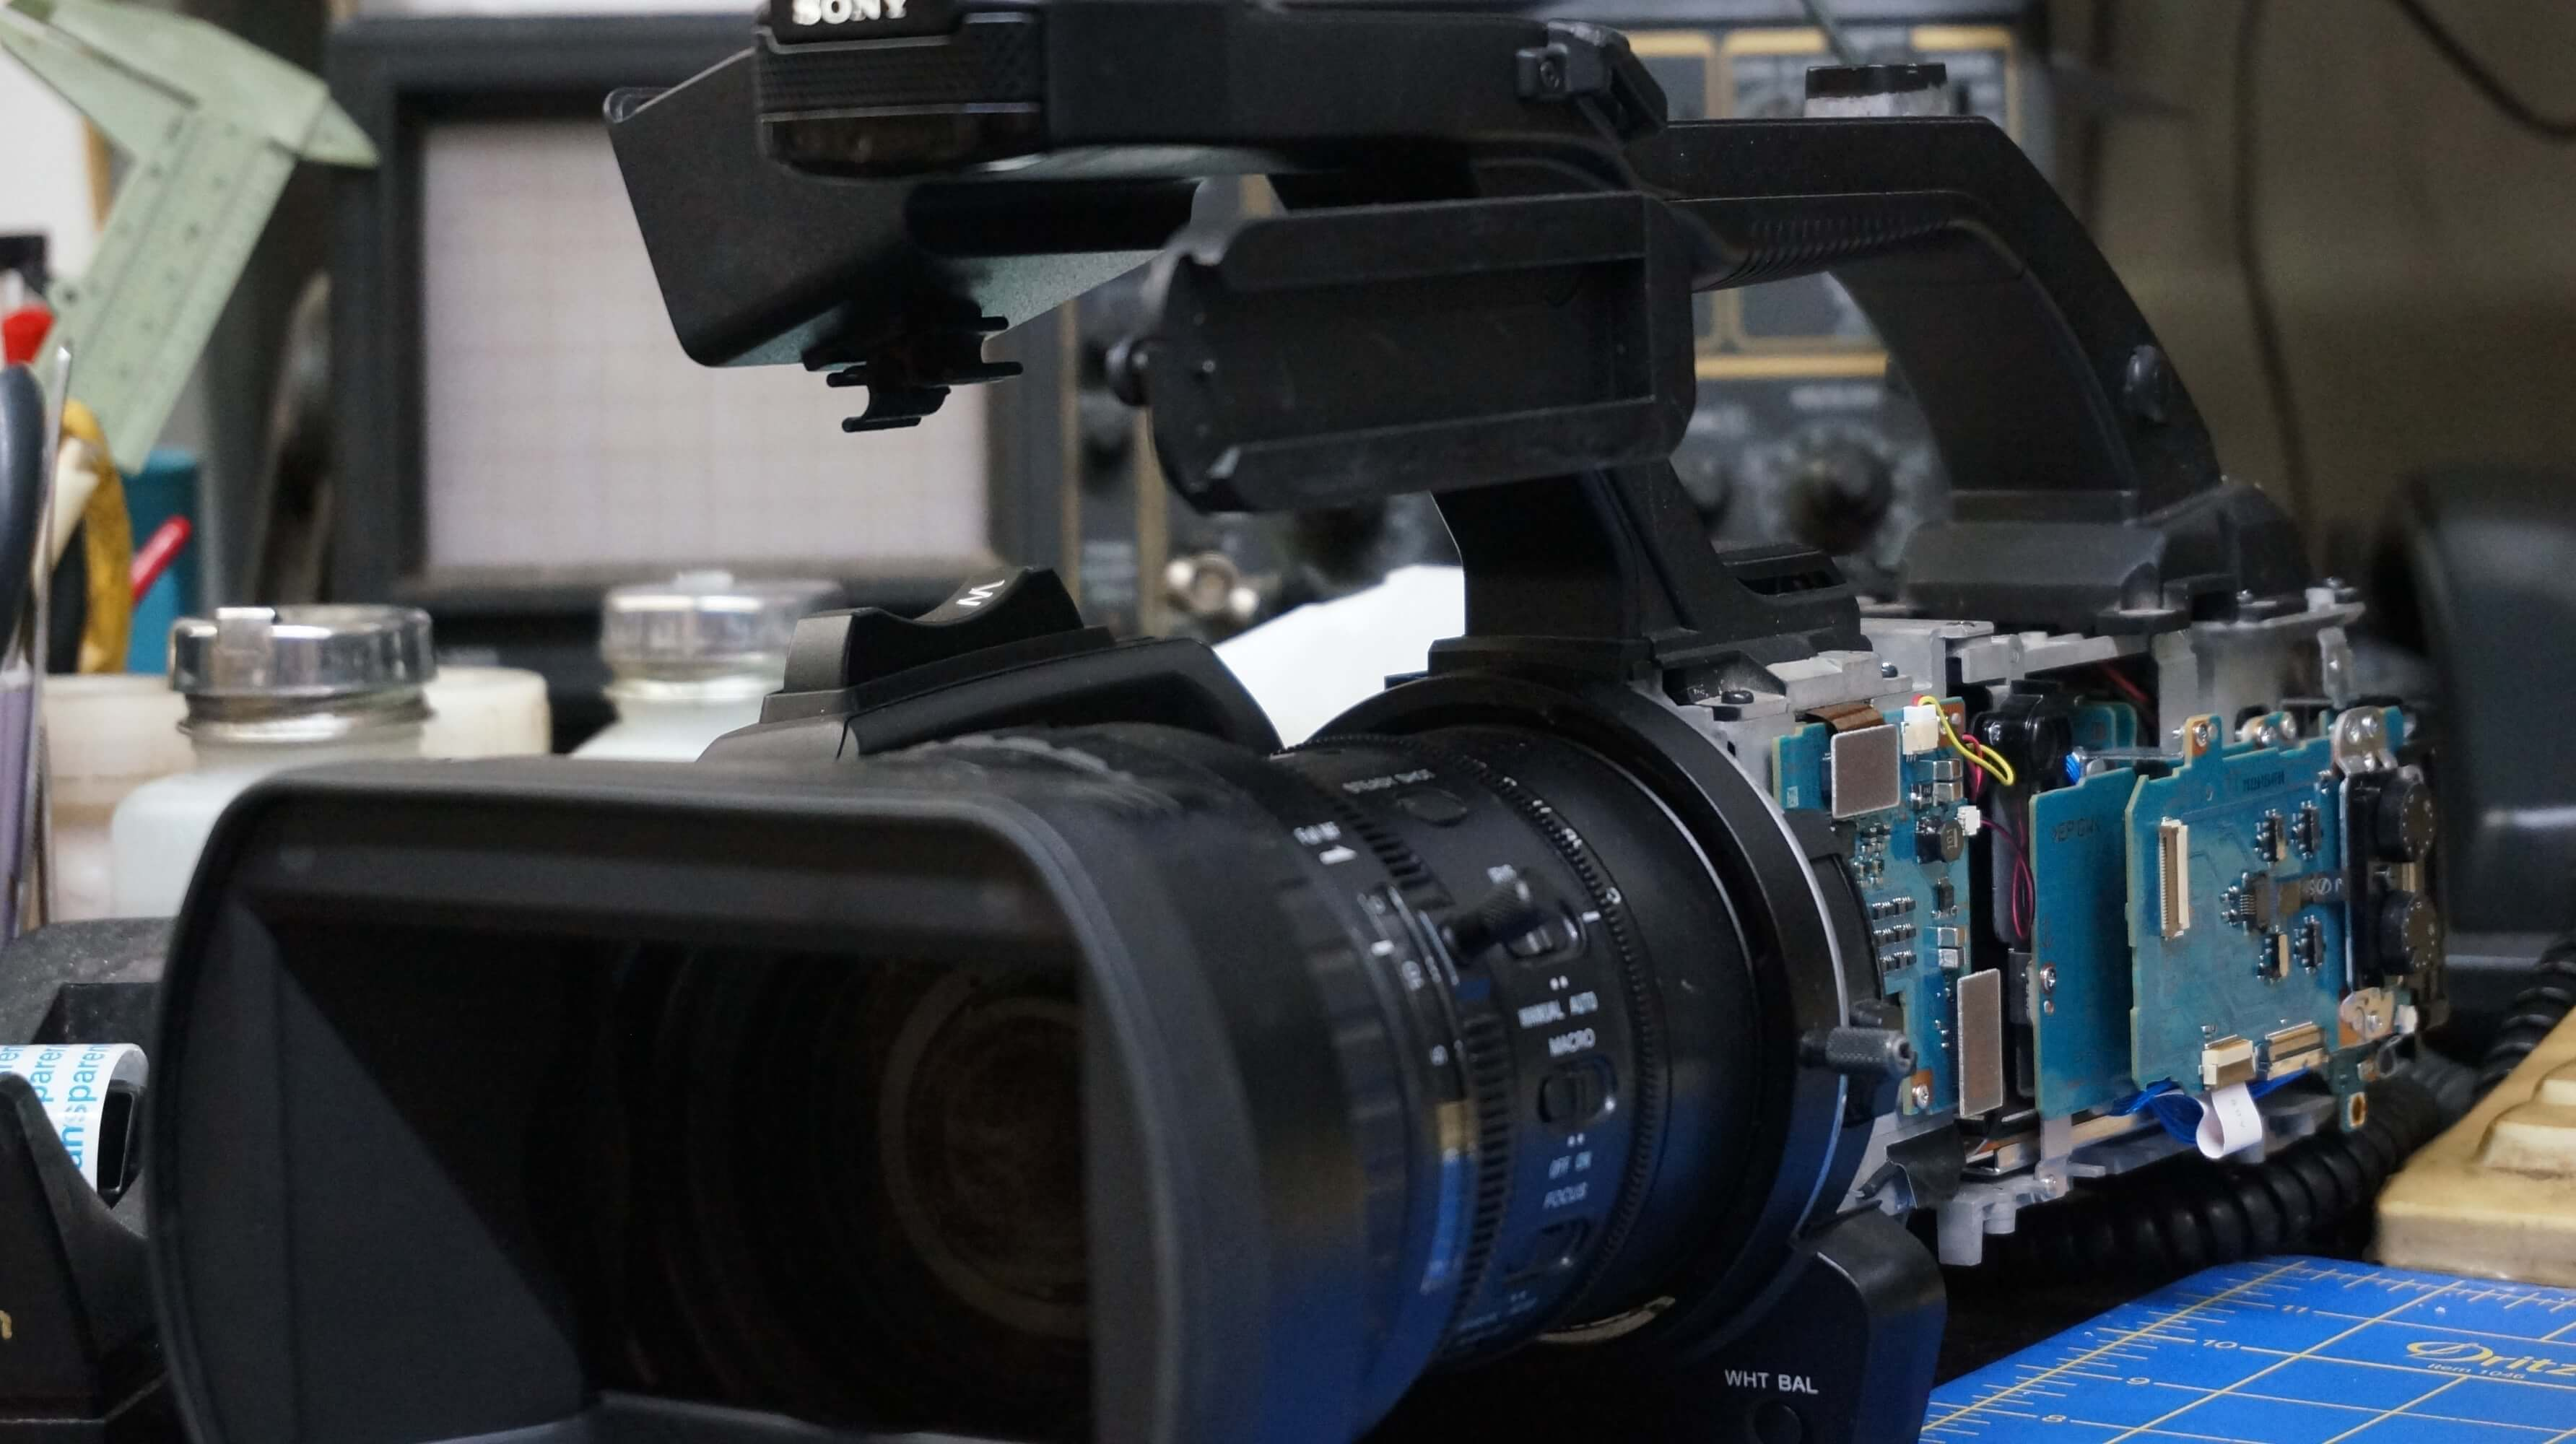 Sony Camcorder Repair Service